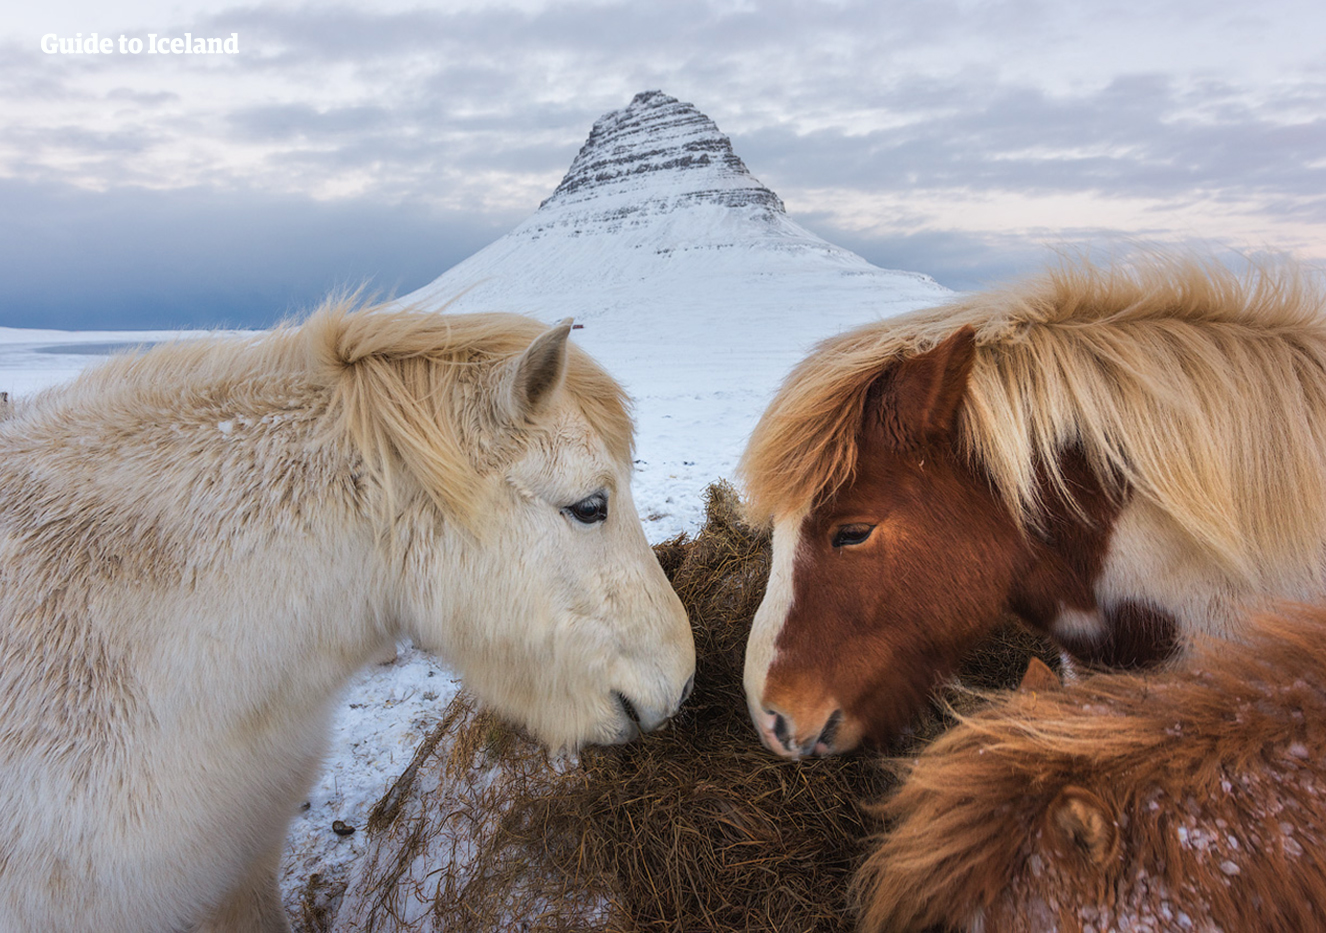 Snaefellsnes has a lot of offer, including the famous Kirkjufell mountain, often seen with roaming Icelandic horses around.